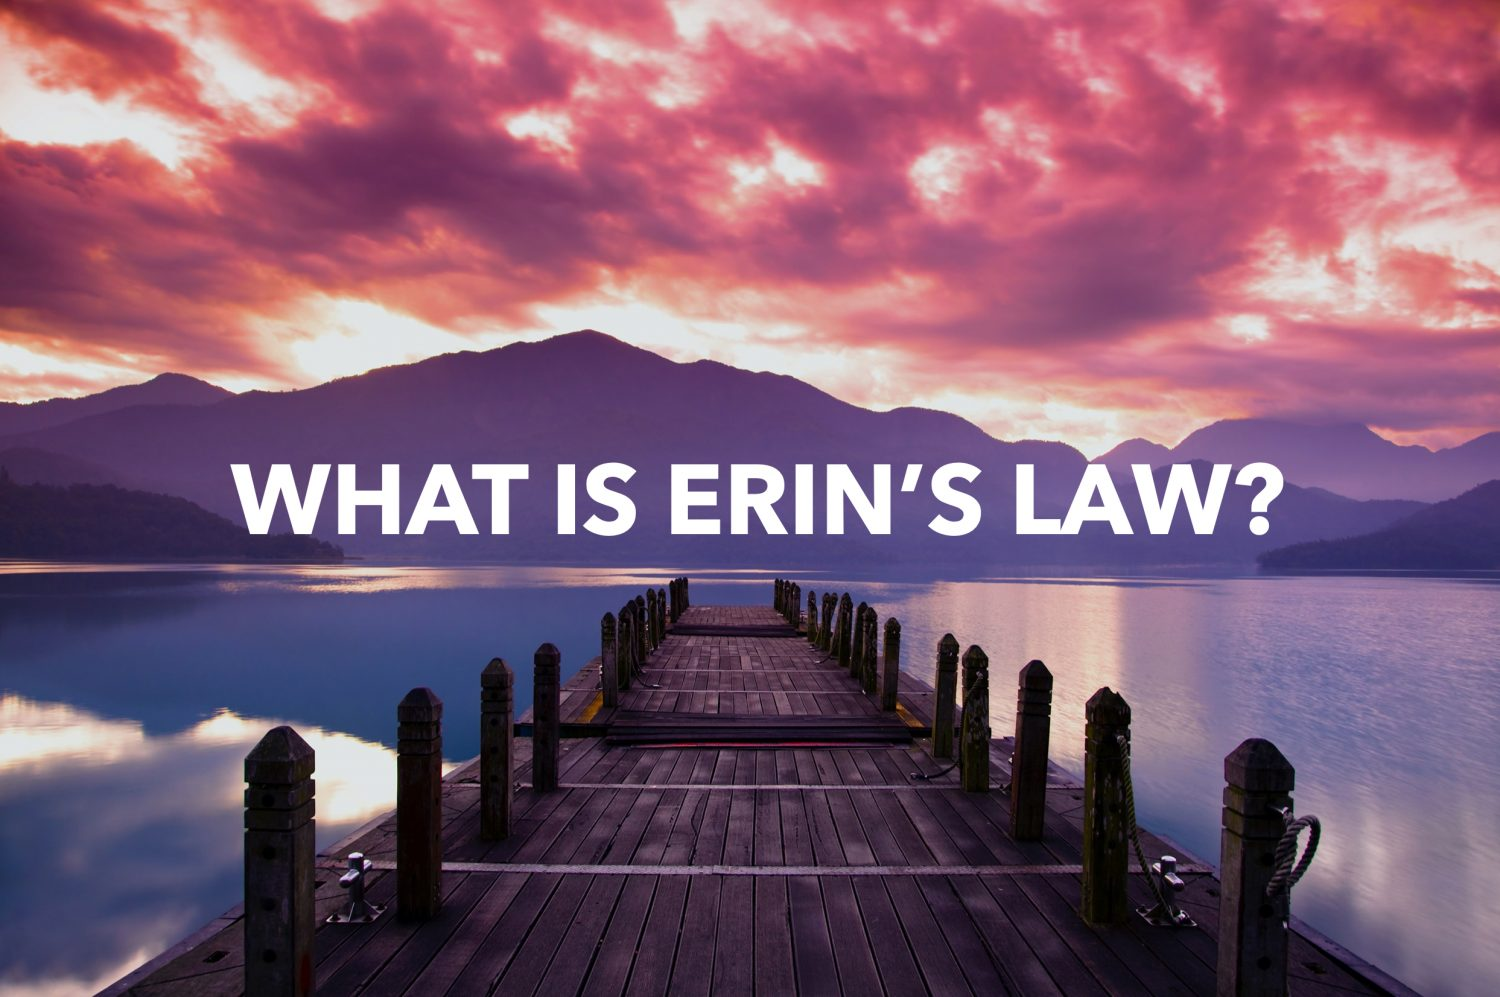 WHAT IS ERIN'S LAW?